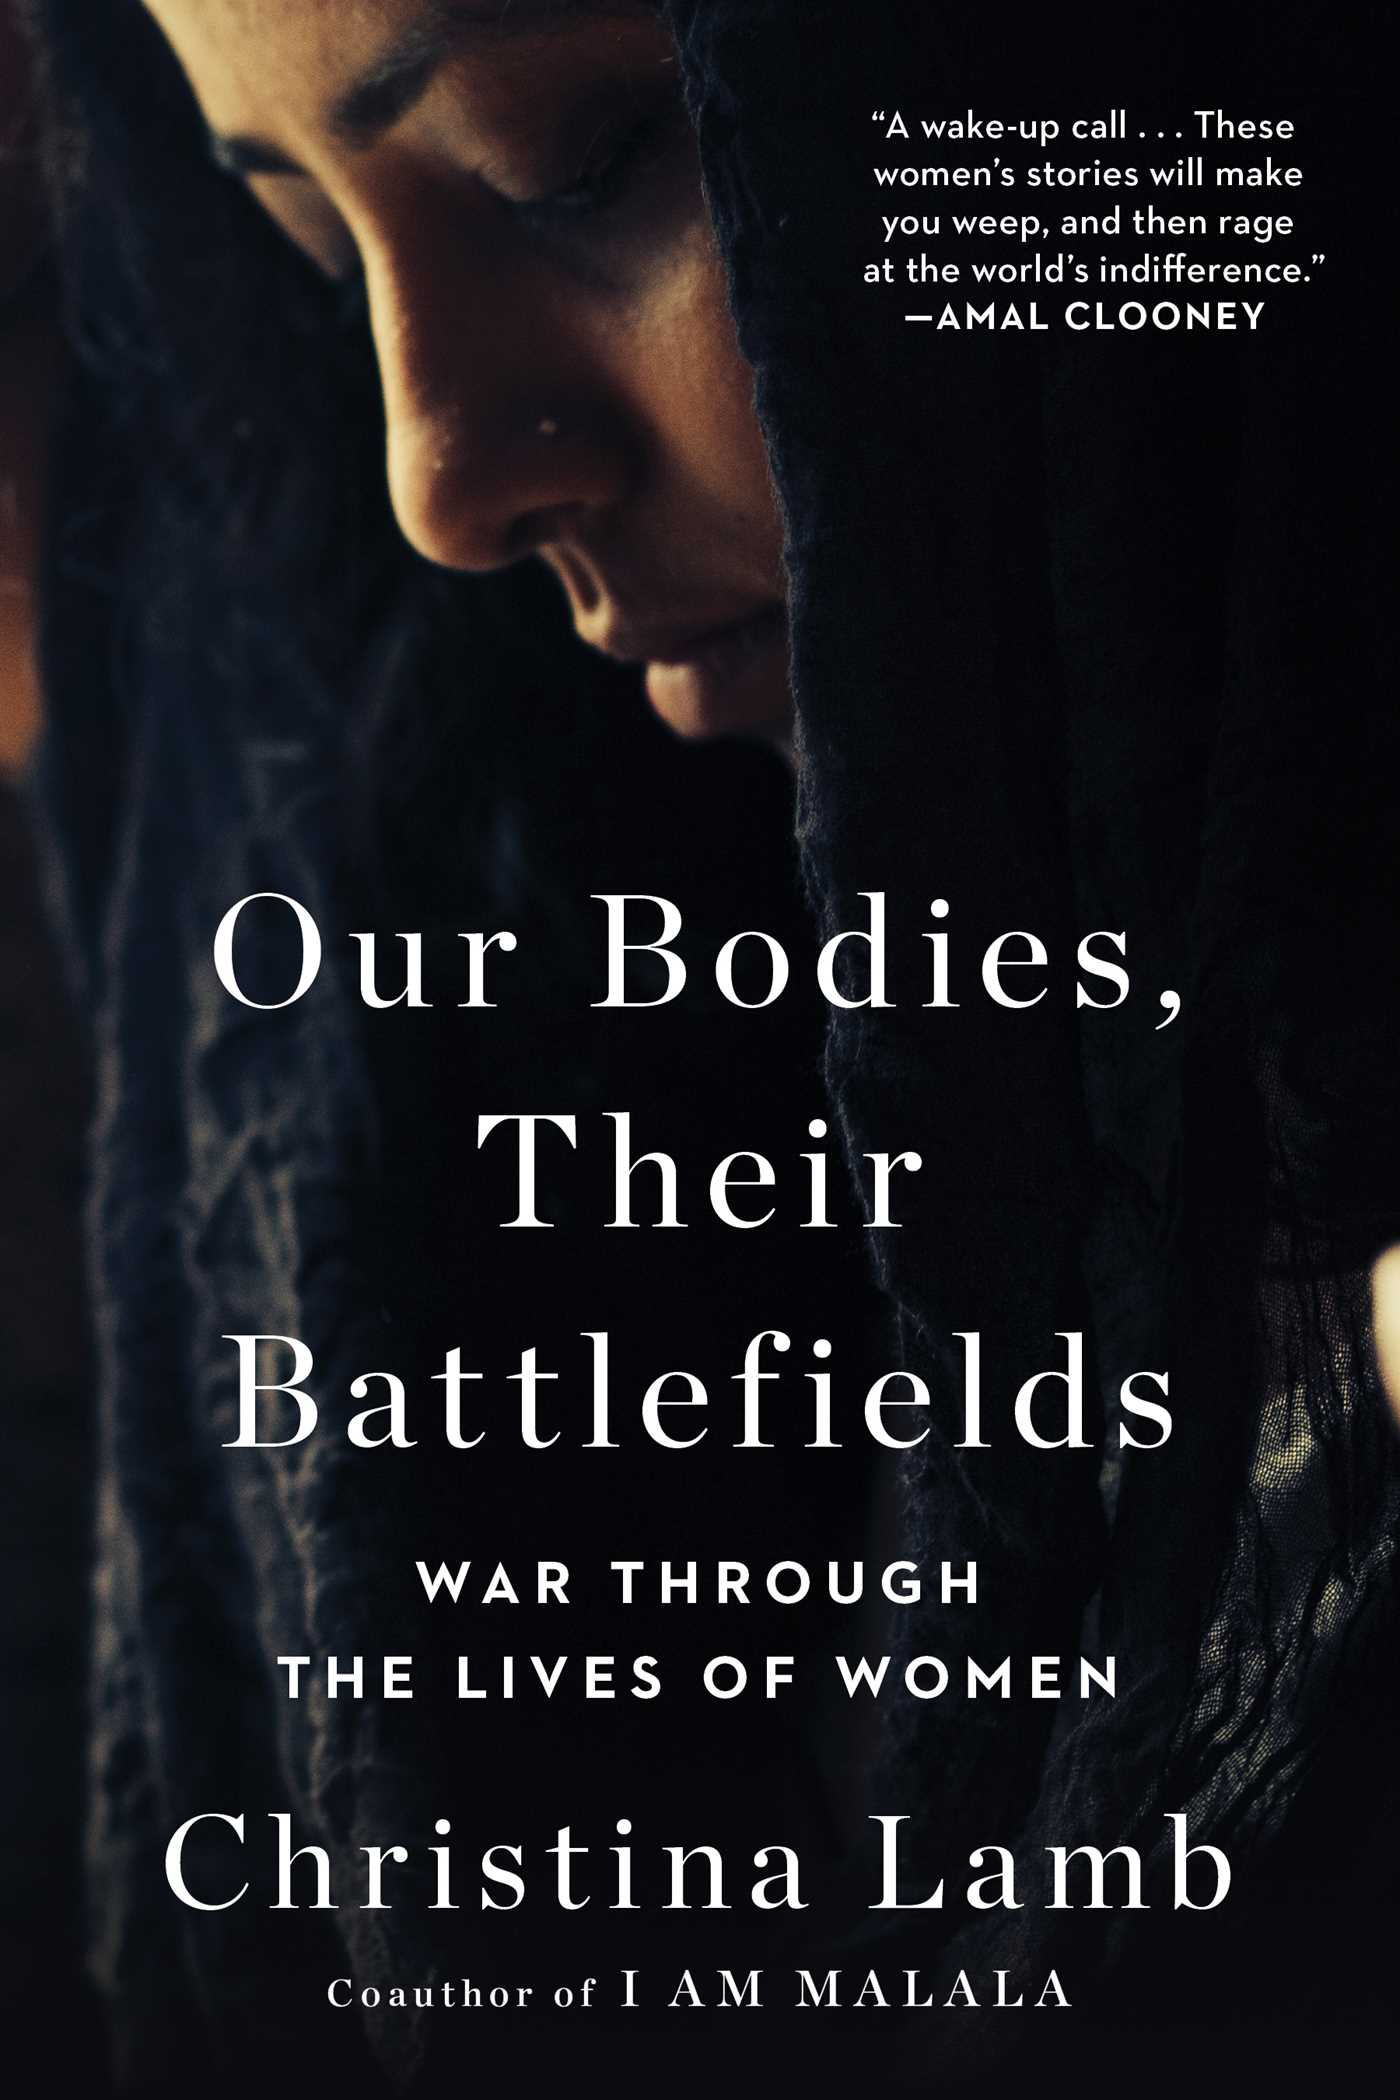 Our Bodies, Their Battlefields: War Through the Lives of Women